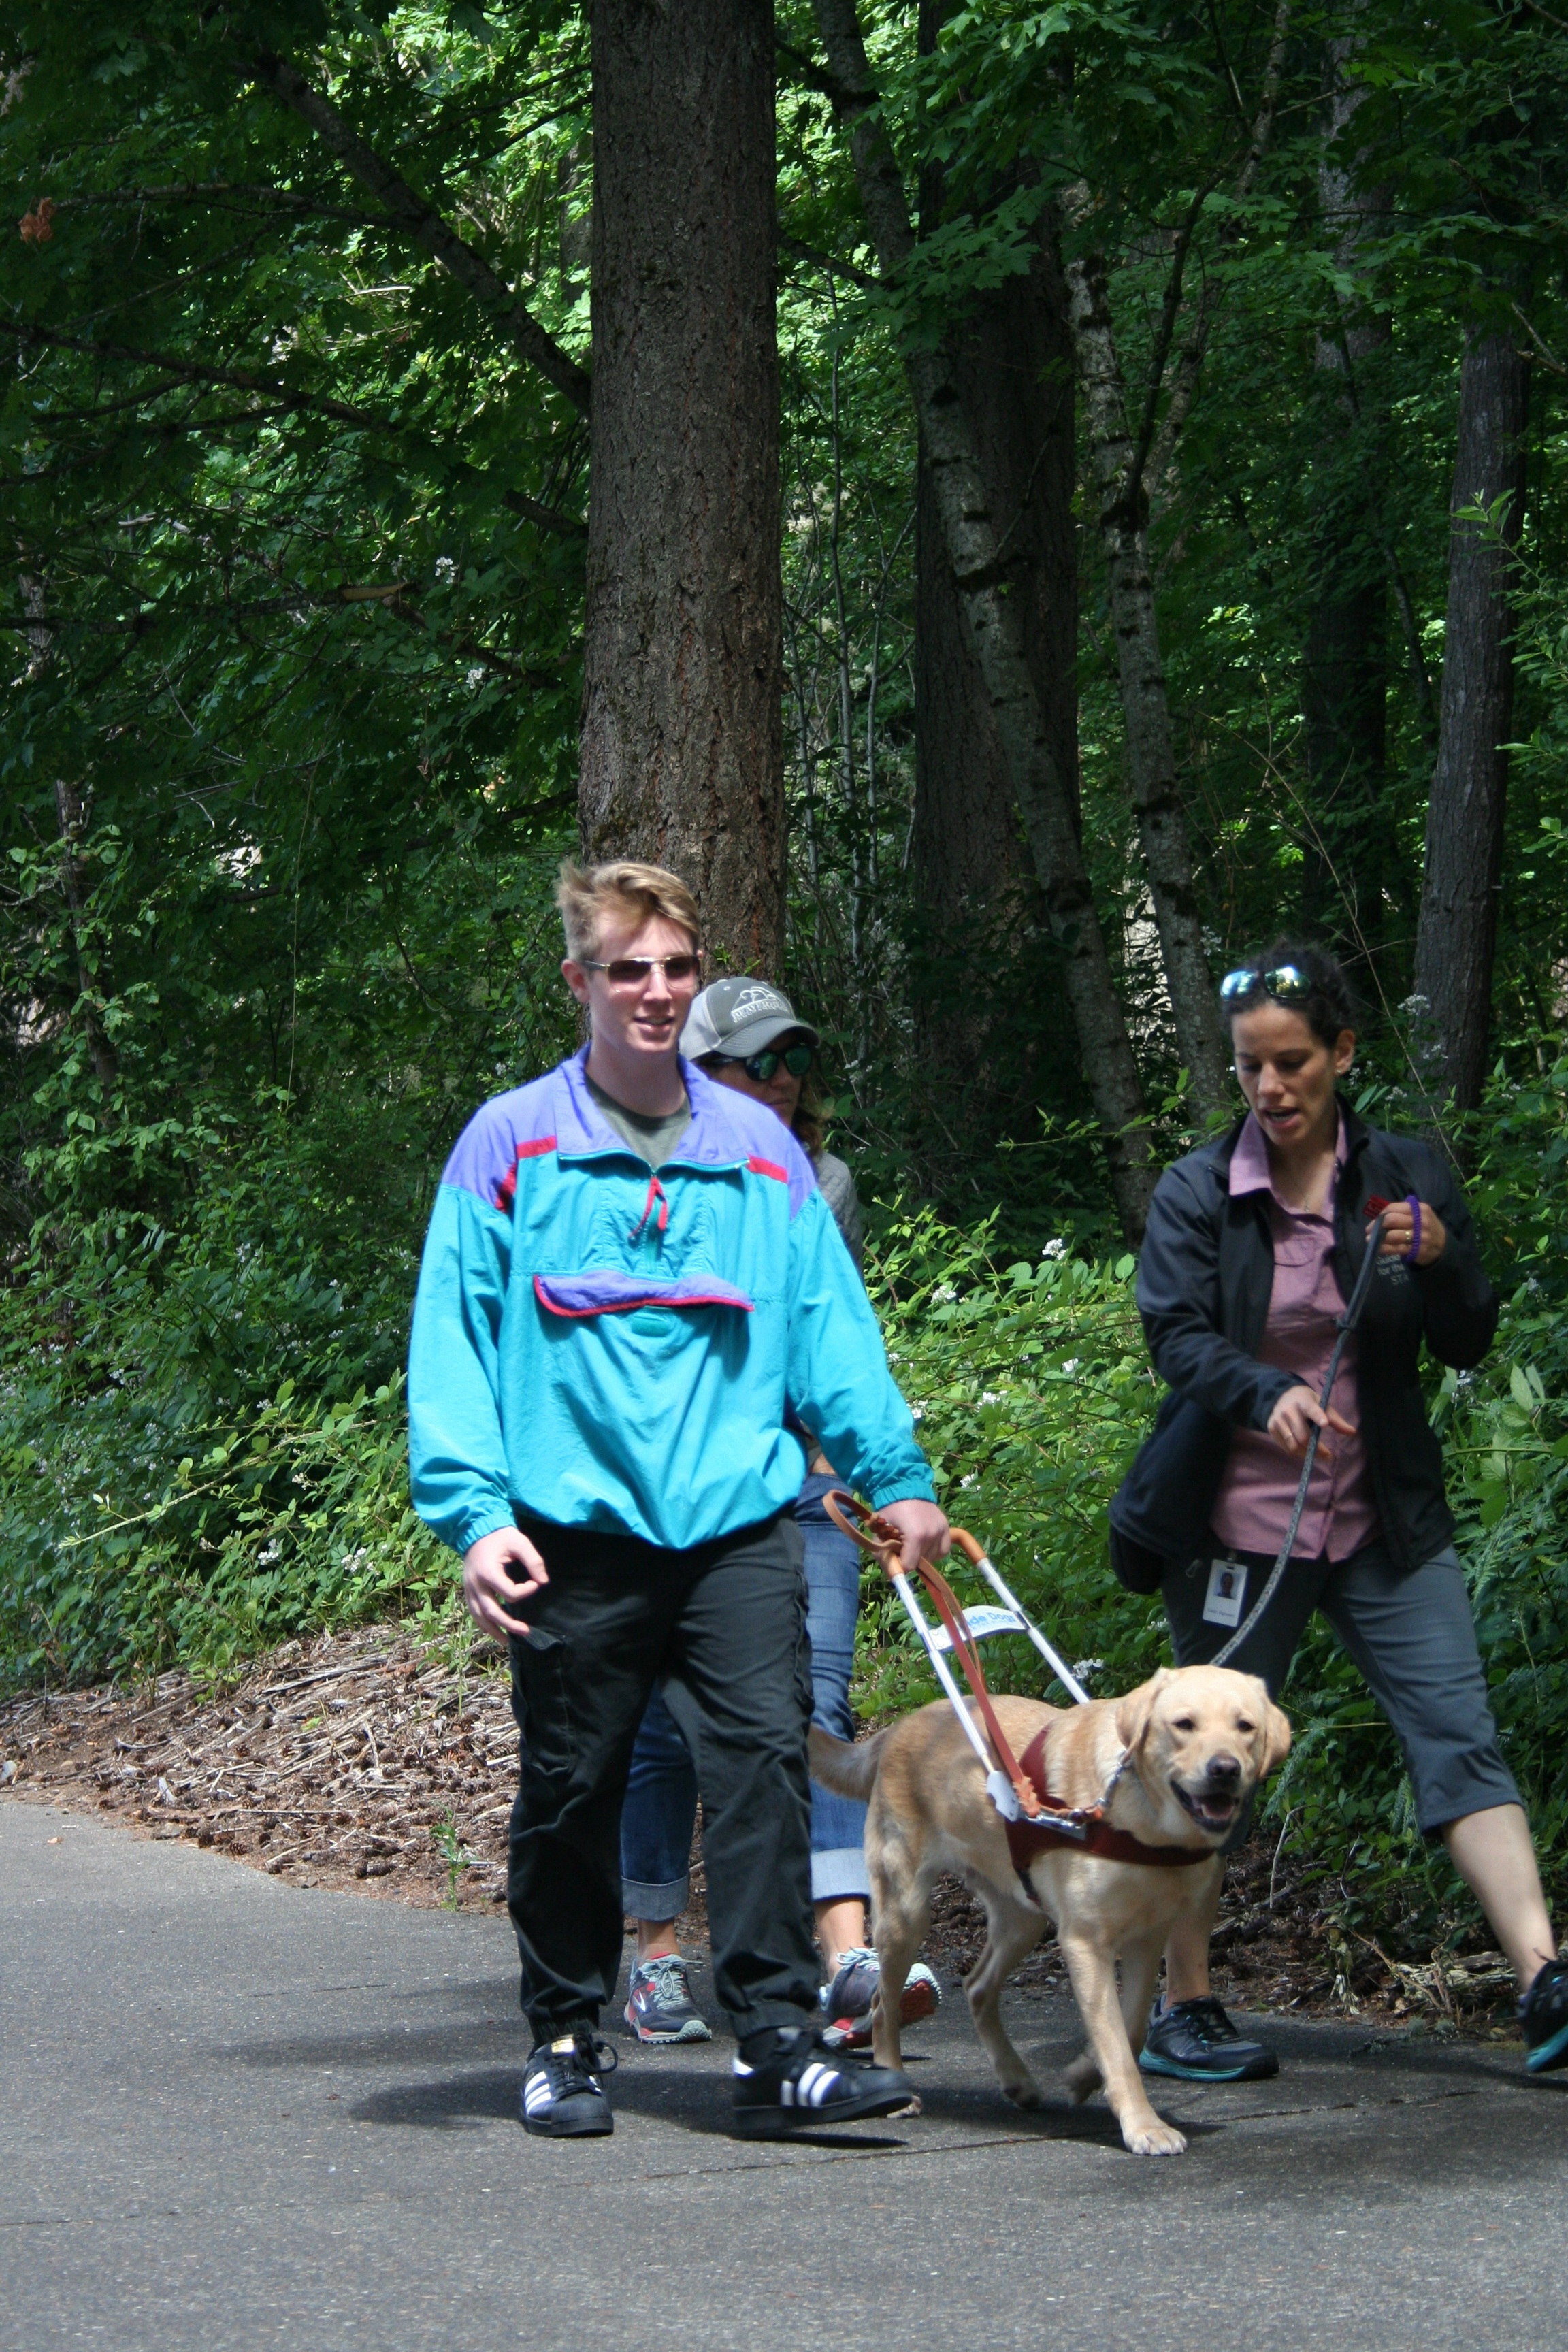 Summer Camp at Guide Dogs for the Blind